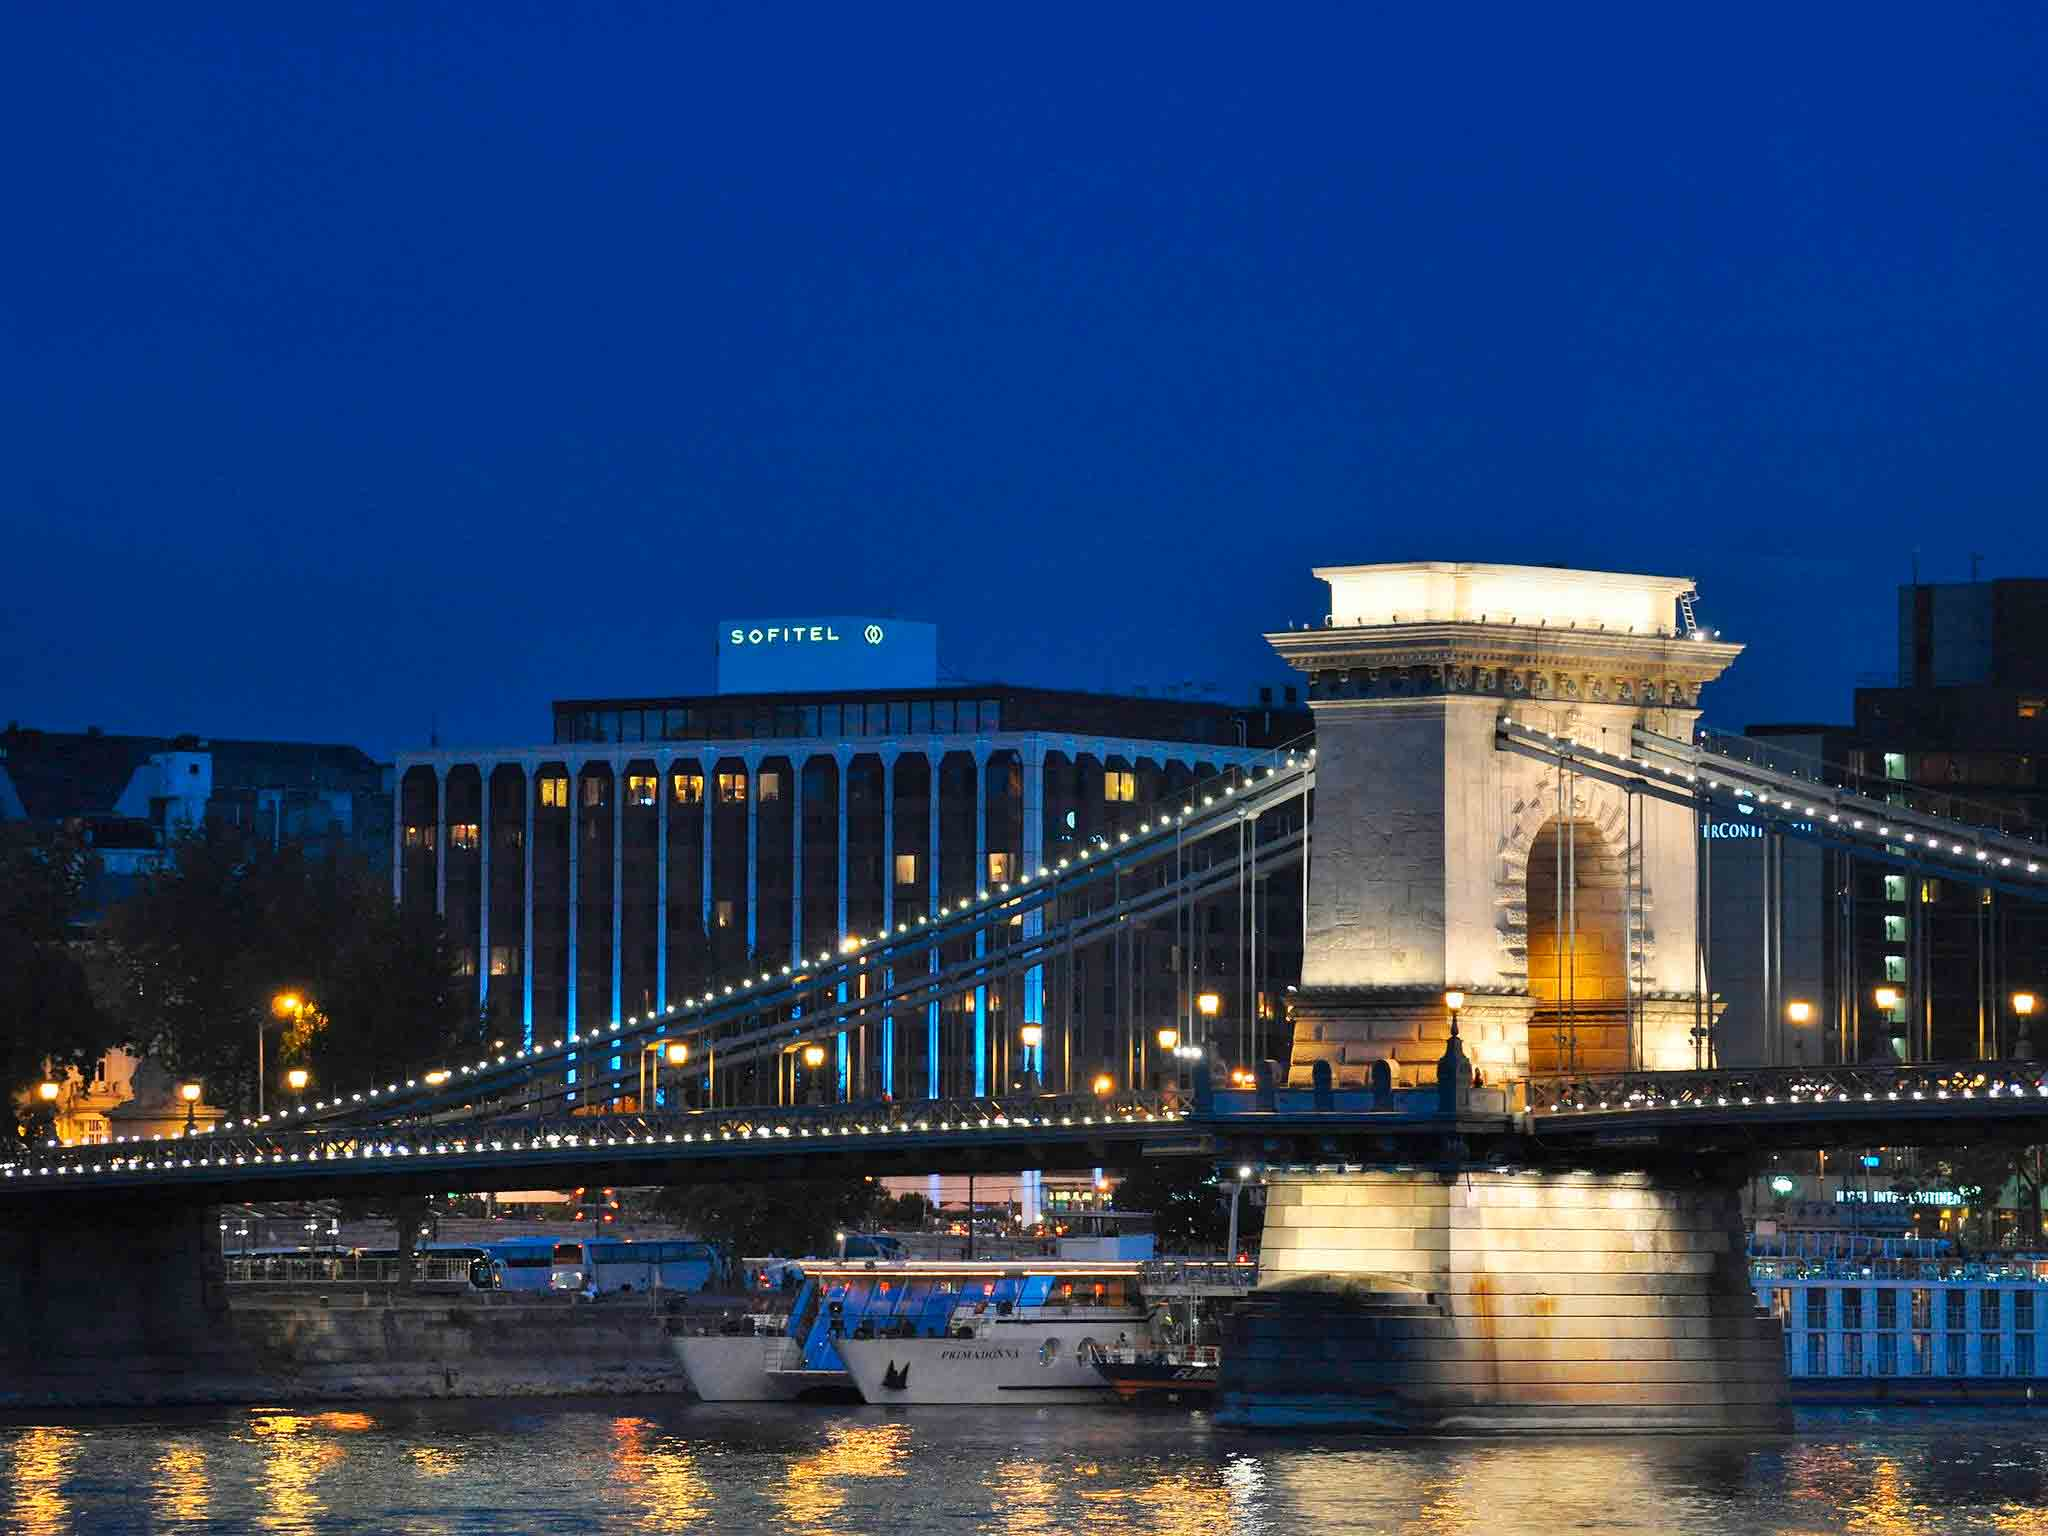 Sofitel Chain Bridge